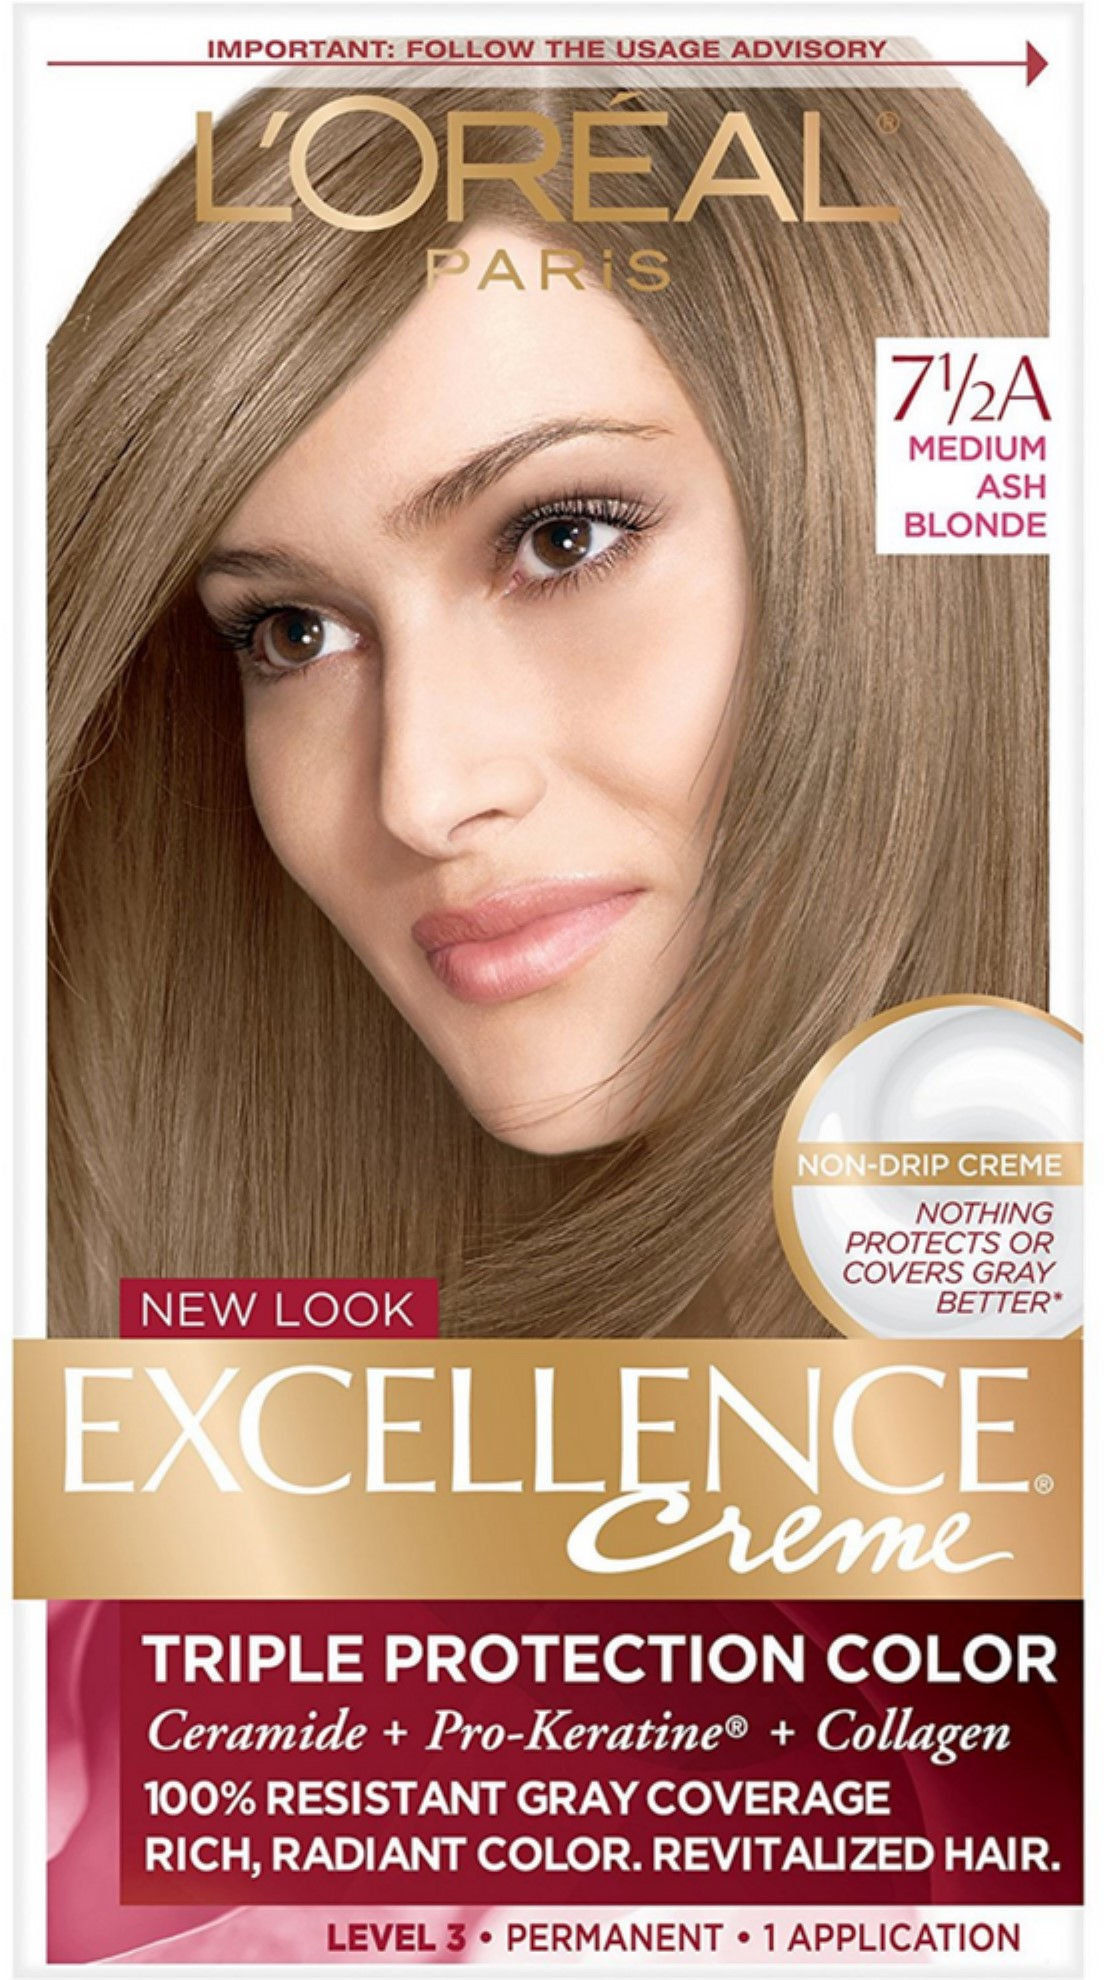 Loreal Hair Color Casting Creme glosses Give You a Stunning New Style